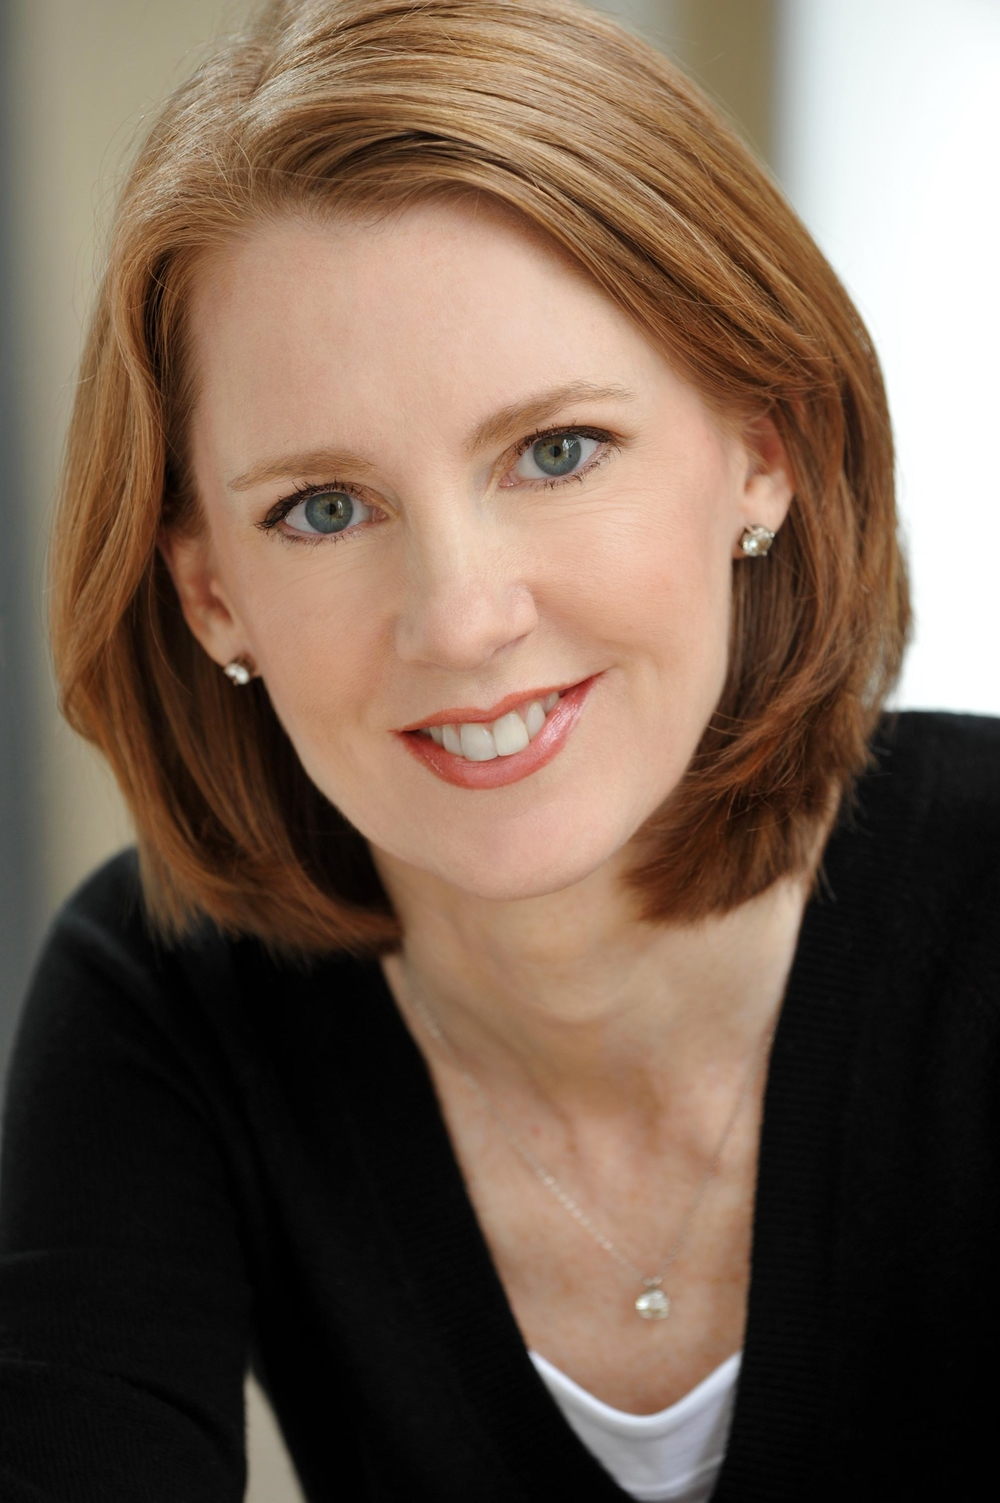 Gretchen Rubin, author of The Happiness Project, on building better freelance habits.